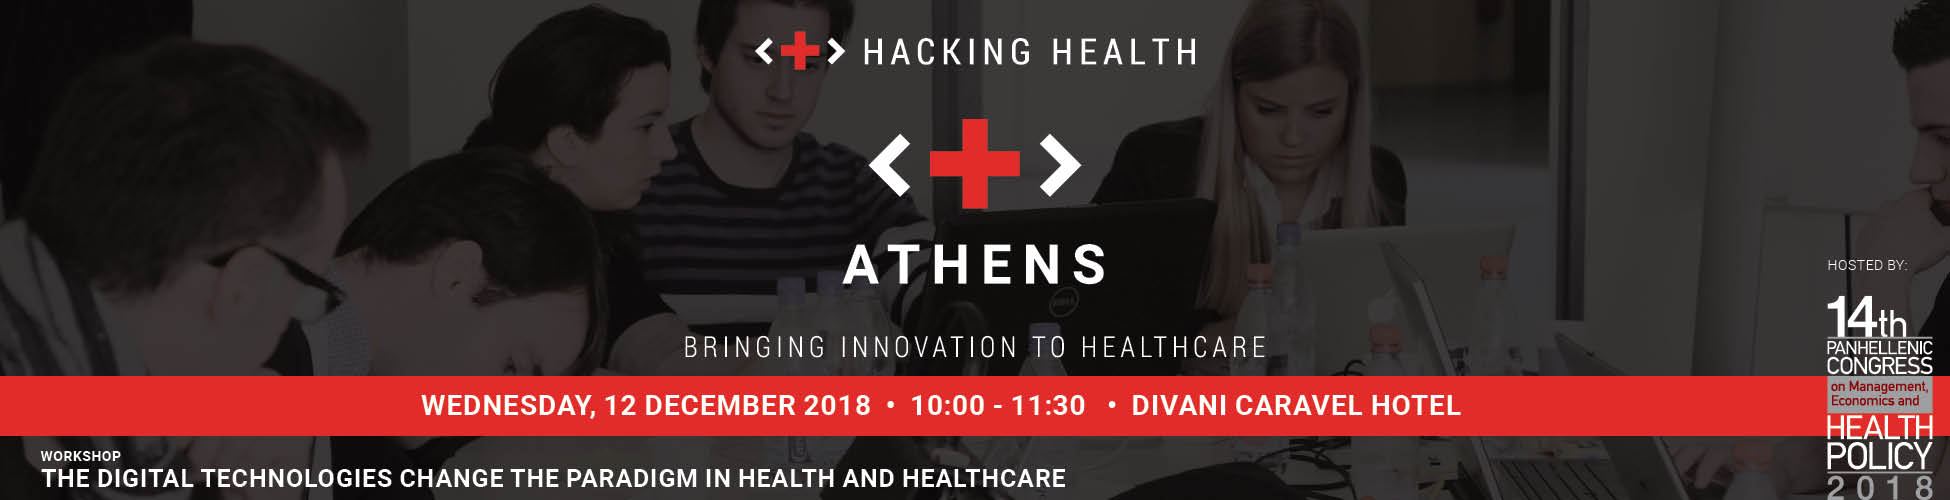 Workshop Towards Hacking Health Athens Hacking Health